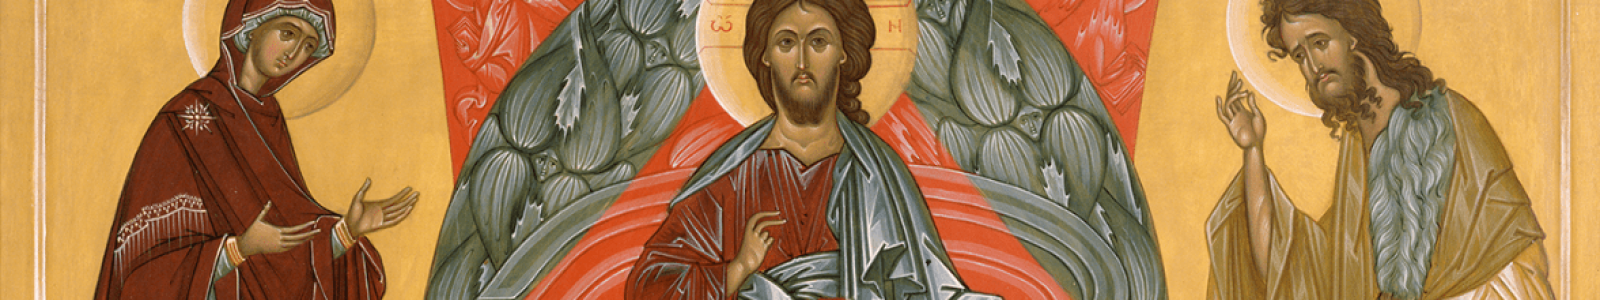 Galerie Russian Icons